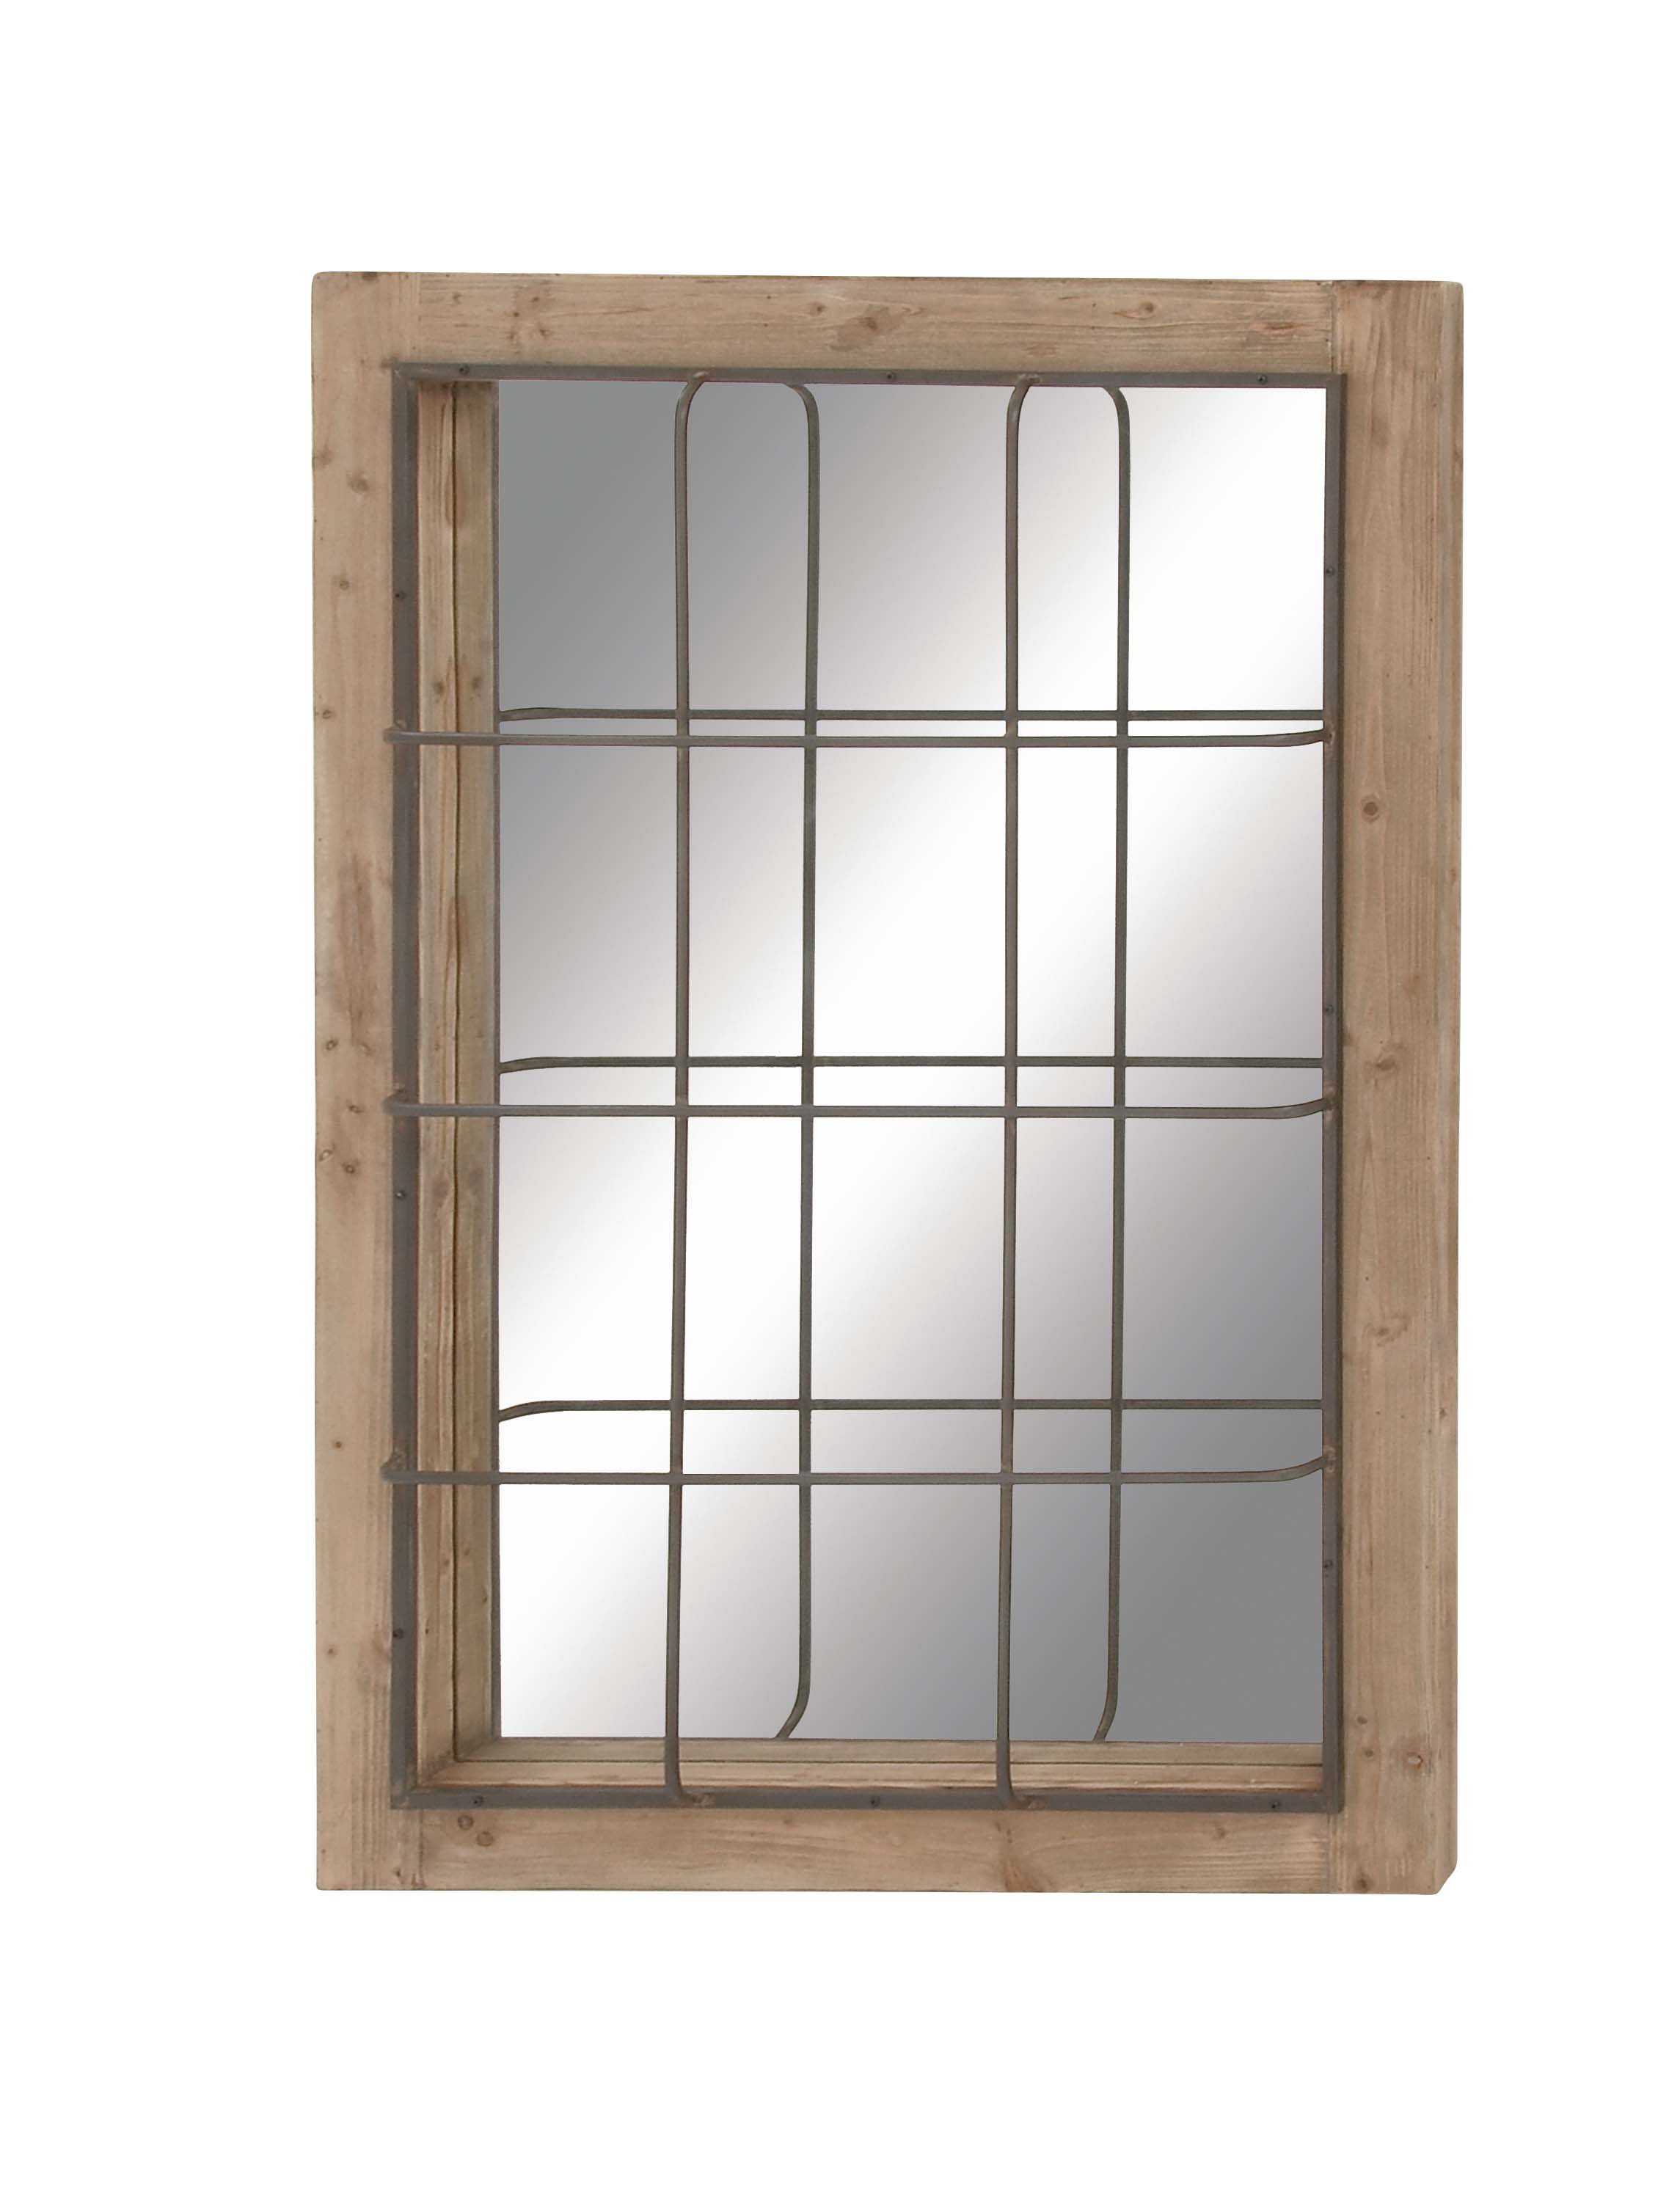 Decmode Farmhouse 52 X 36 Inch Rectangular Wooden Framed Wall Mirror With Metal Grid Overlay Brown